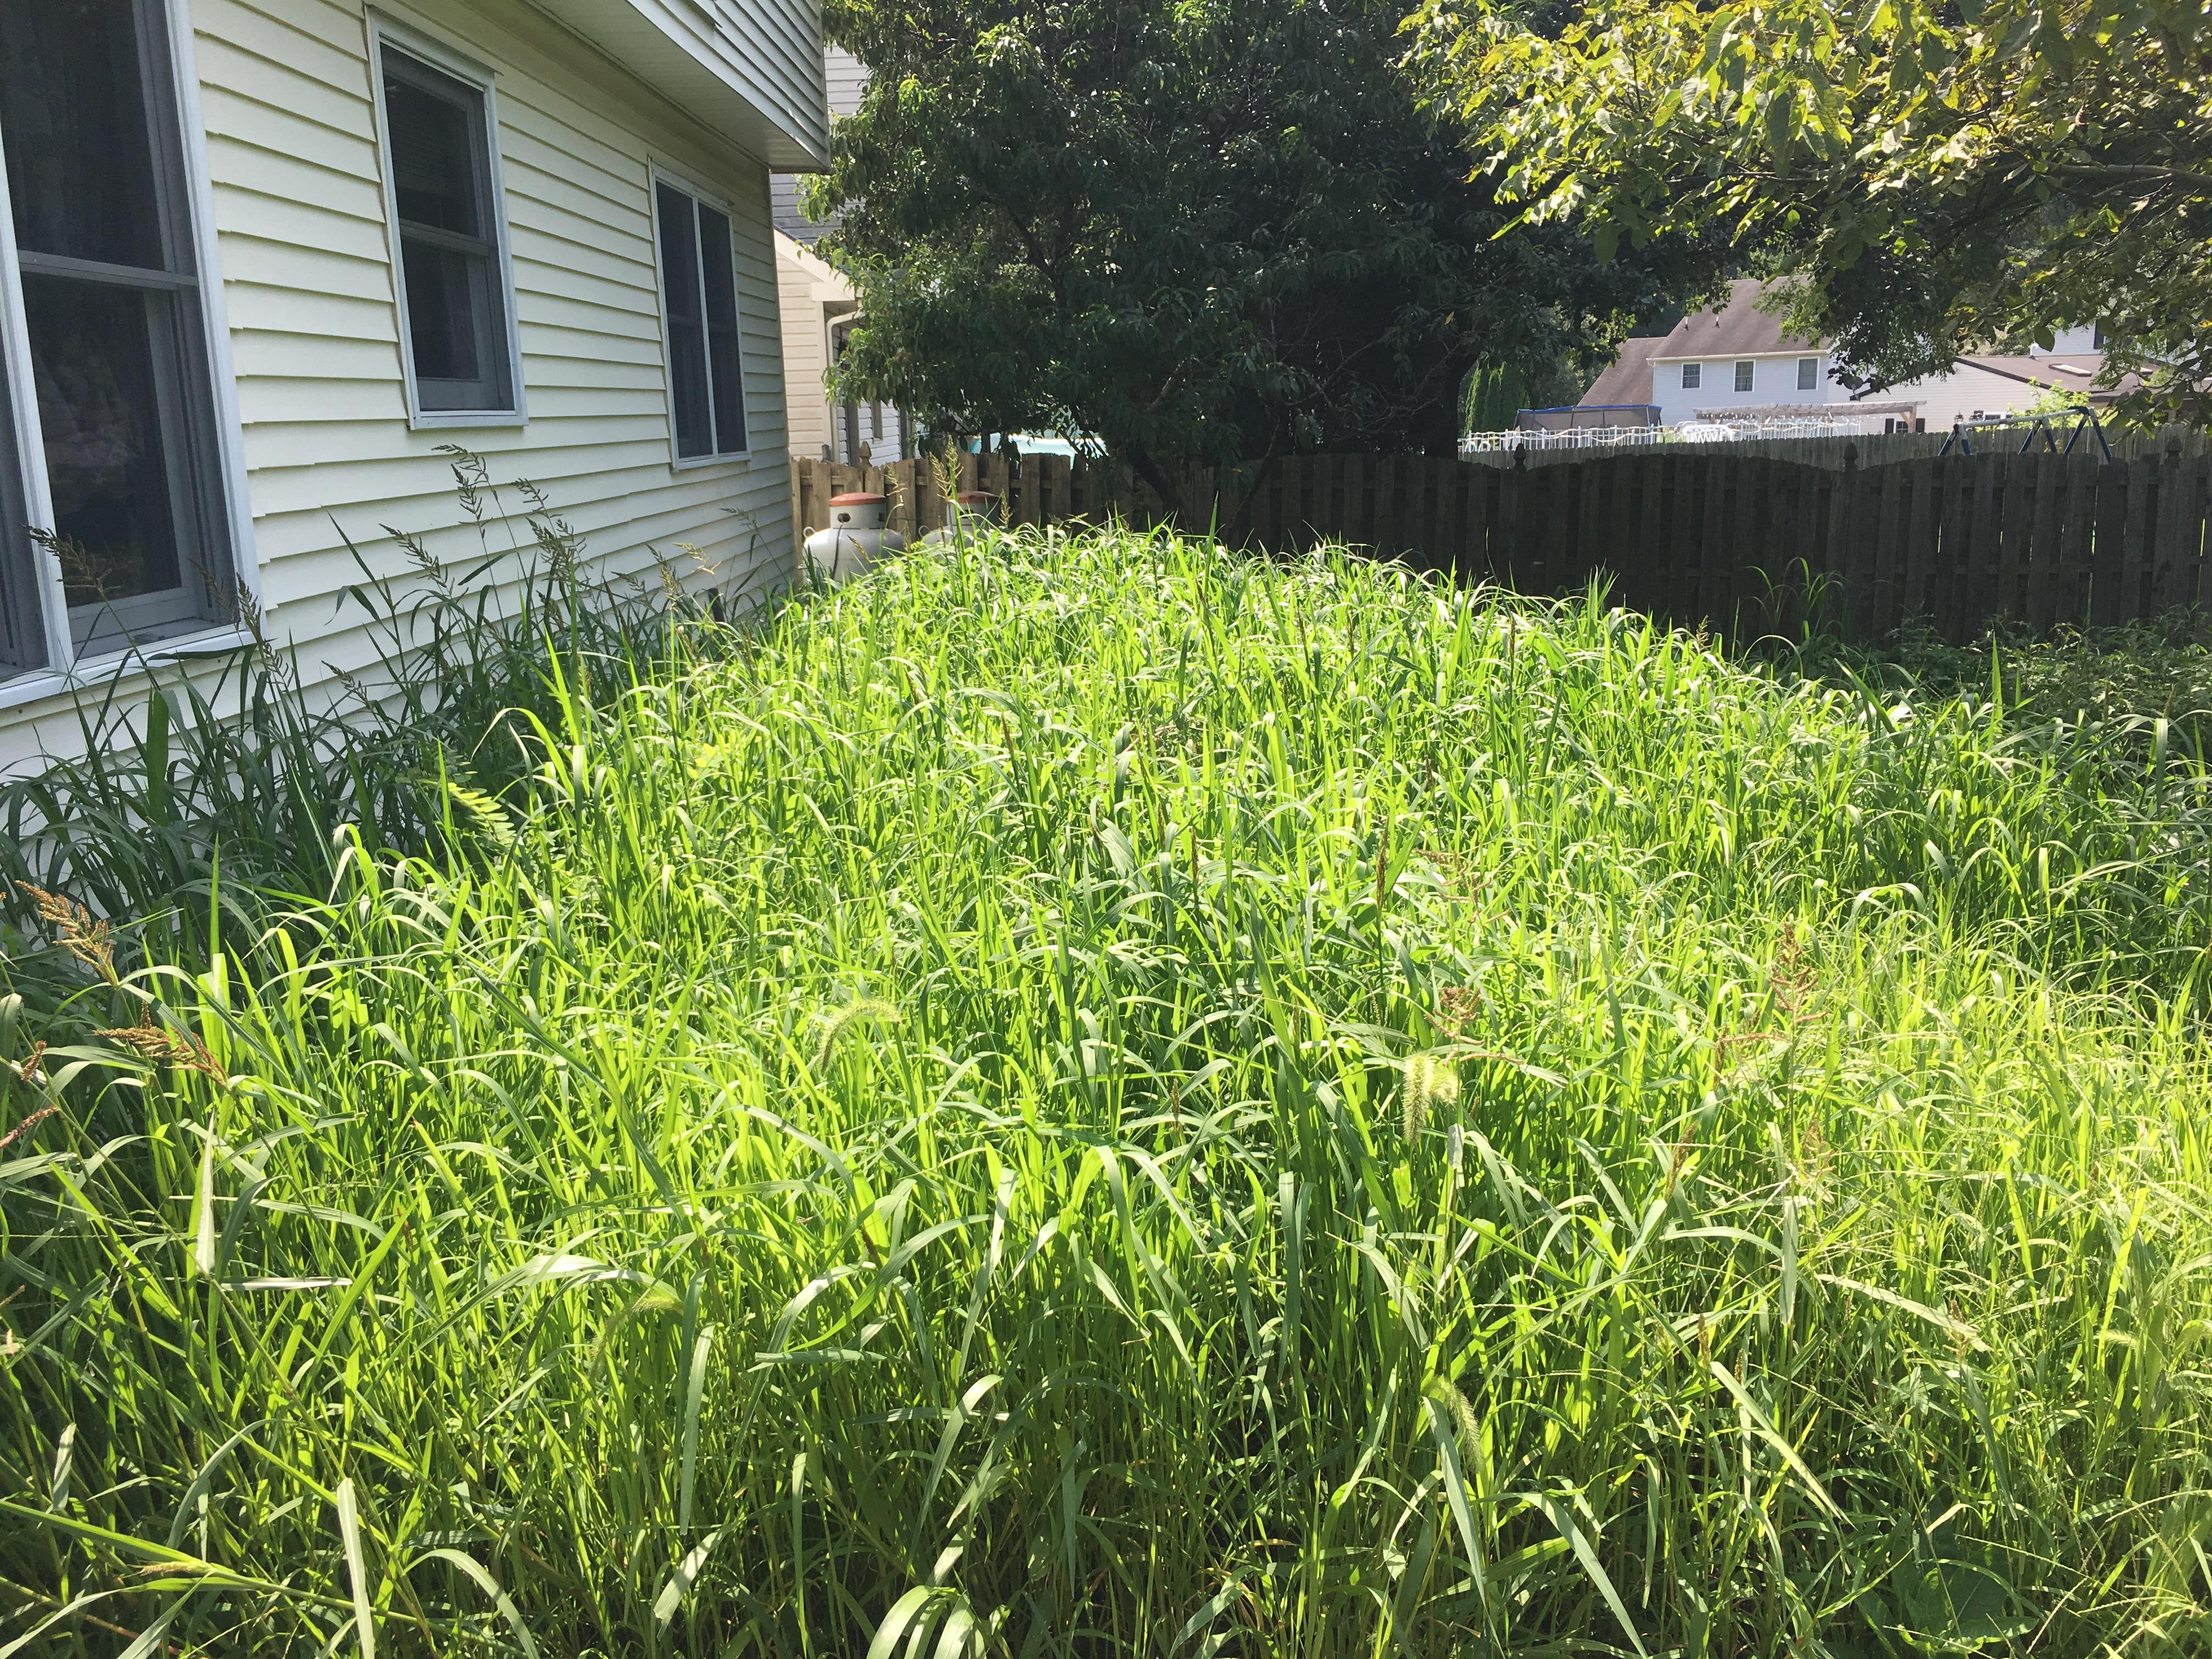 Fenced In Backyard With Overgrown Flowerbeds Ready For